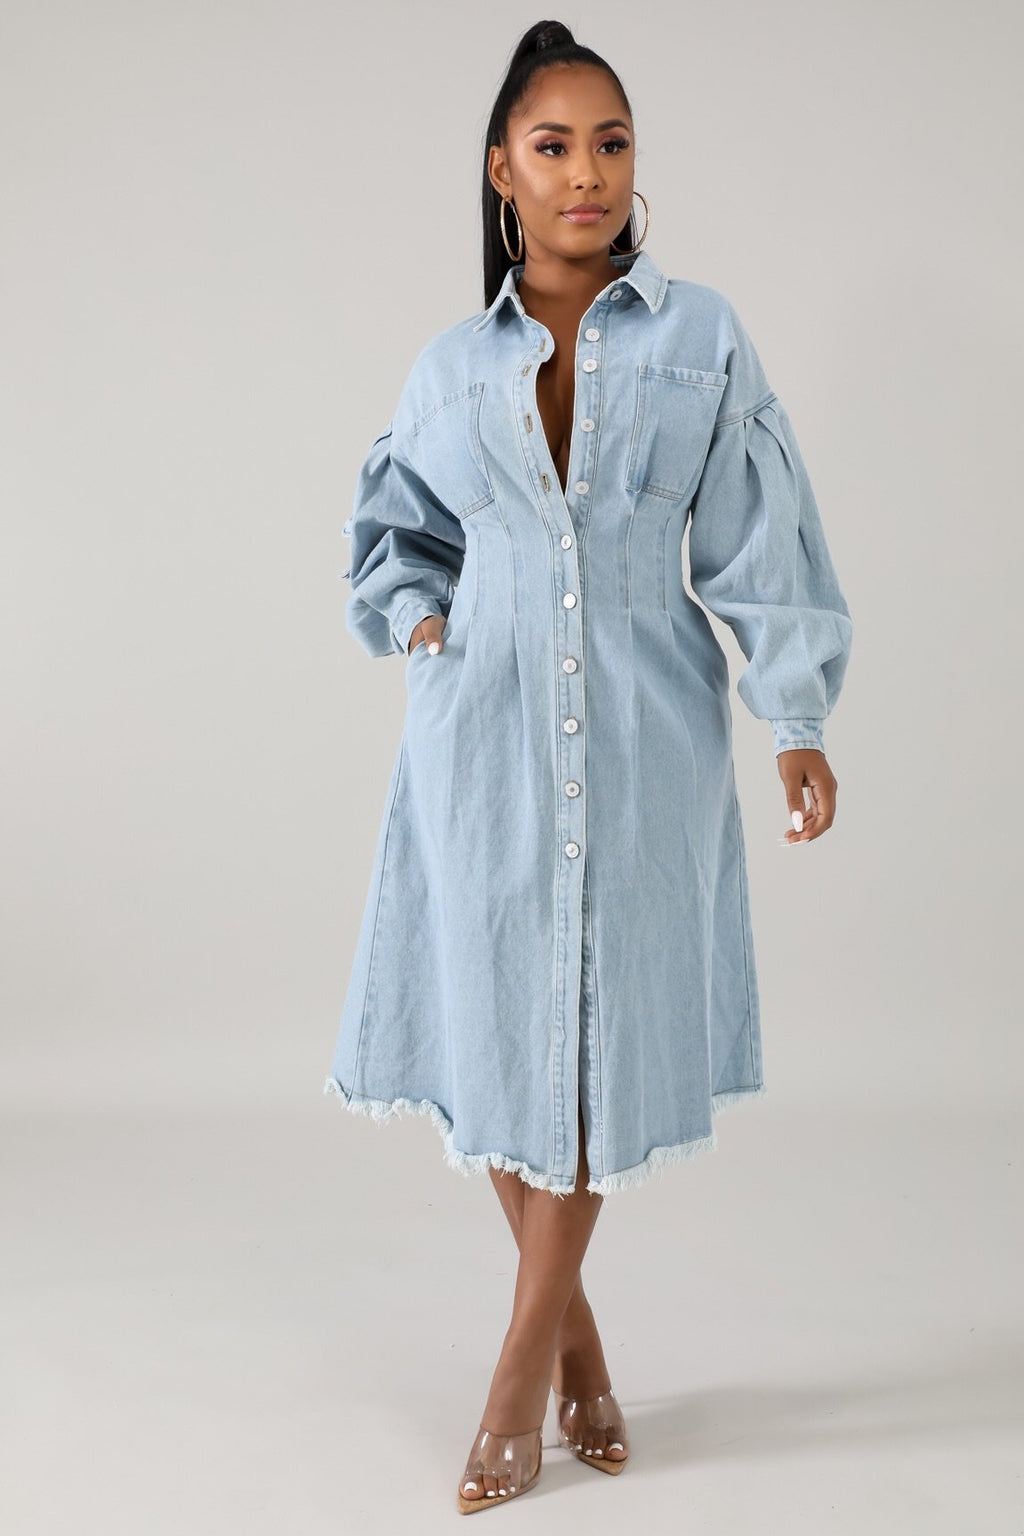 Clinched denim dress